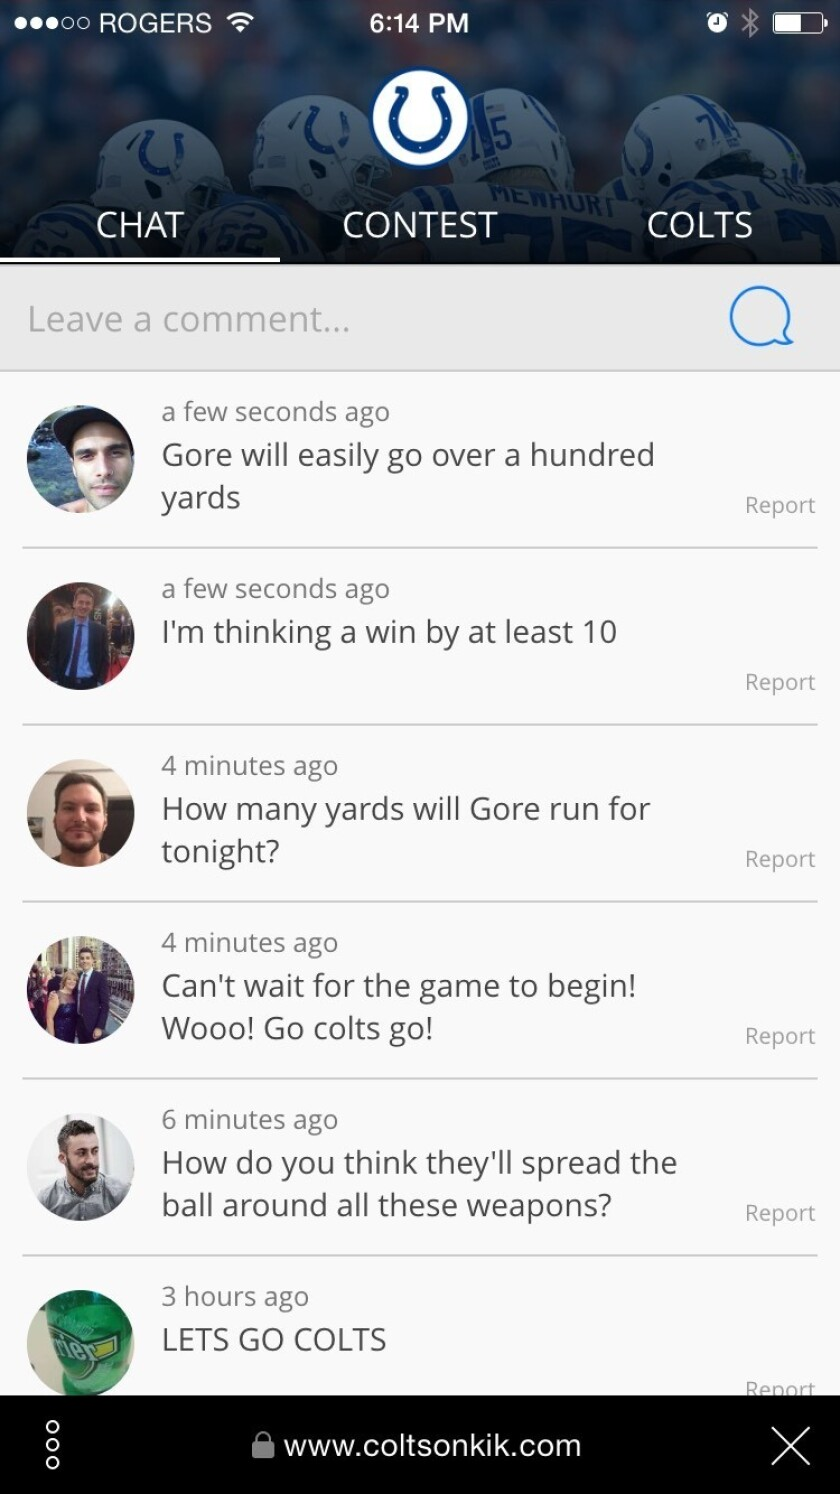 The NFL's Indianapolis Colts launched a page on the chat app Kik this week to provide young fans with a place to learn about what it takes to be a football player, see information about the team and chat with other fans.